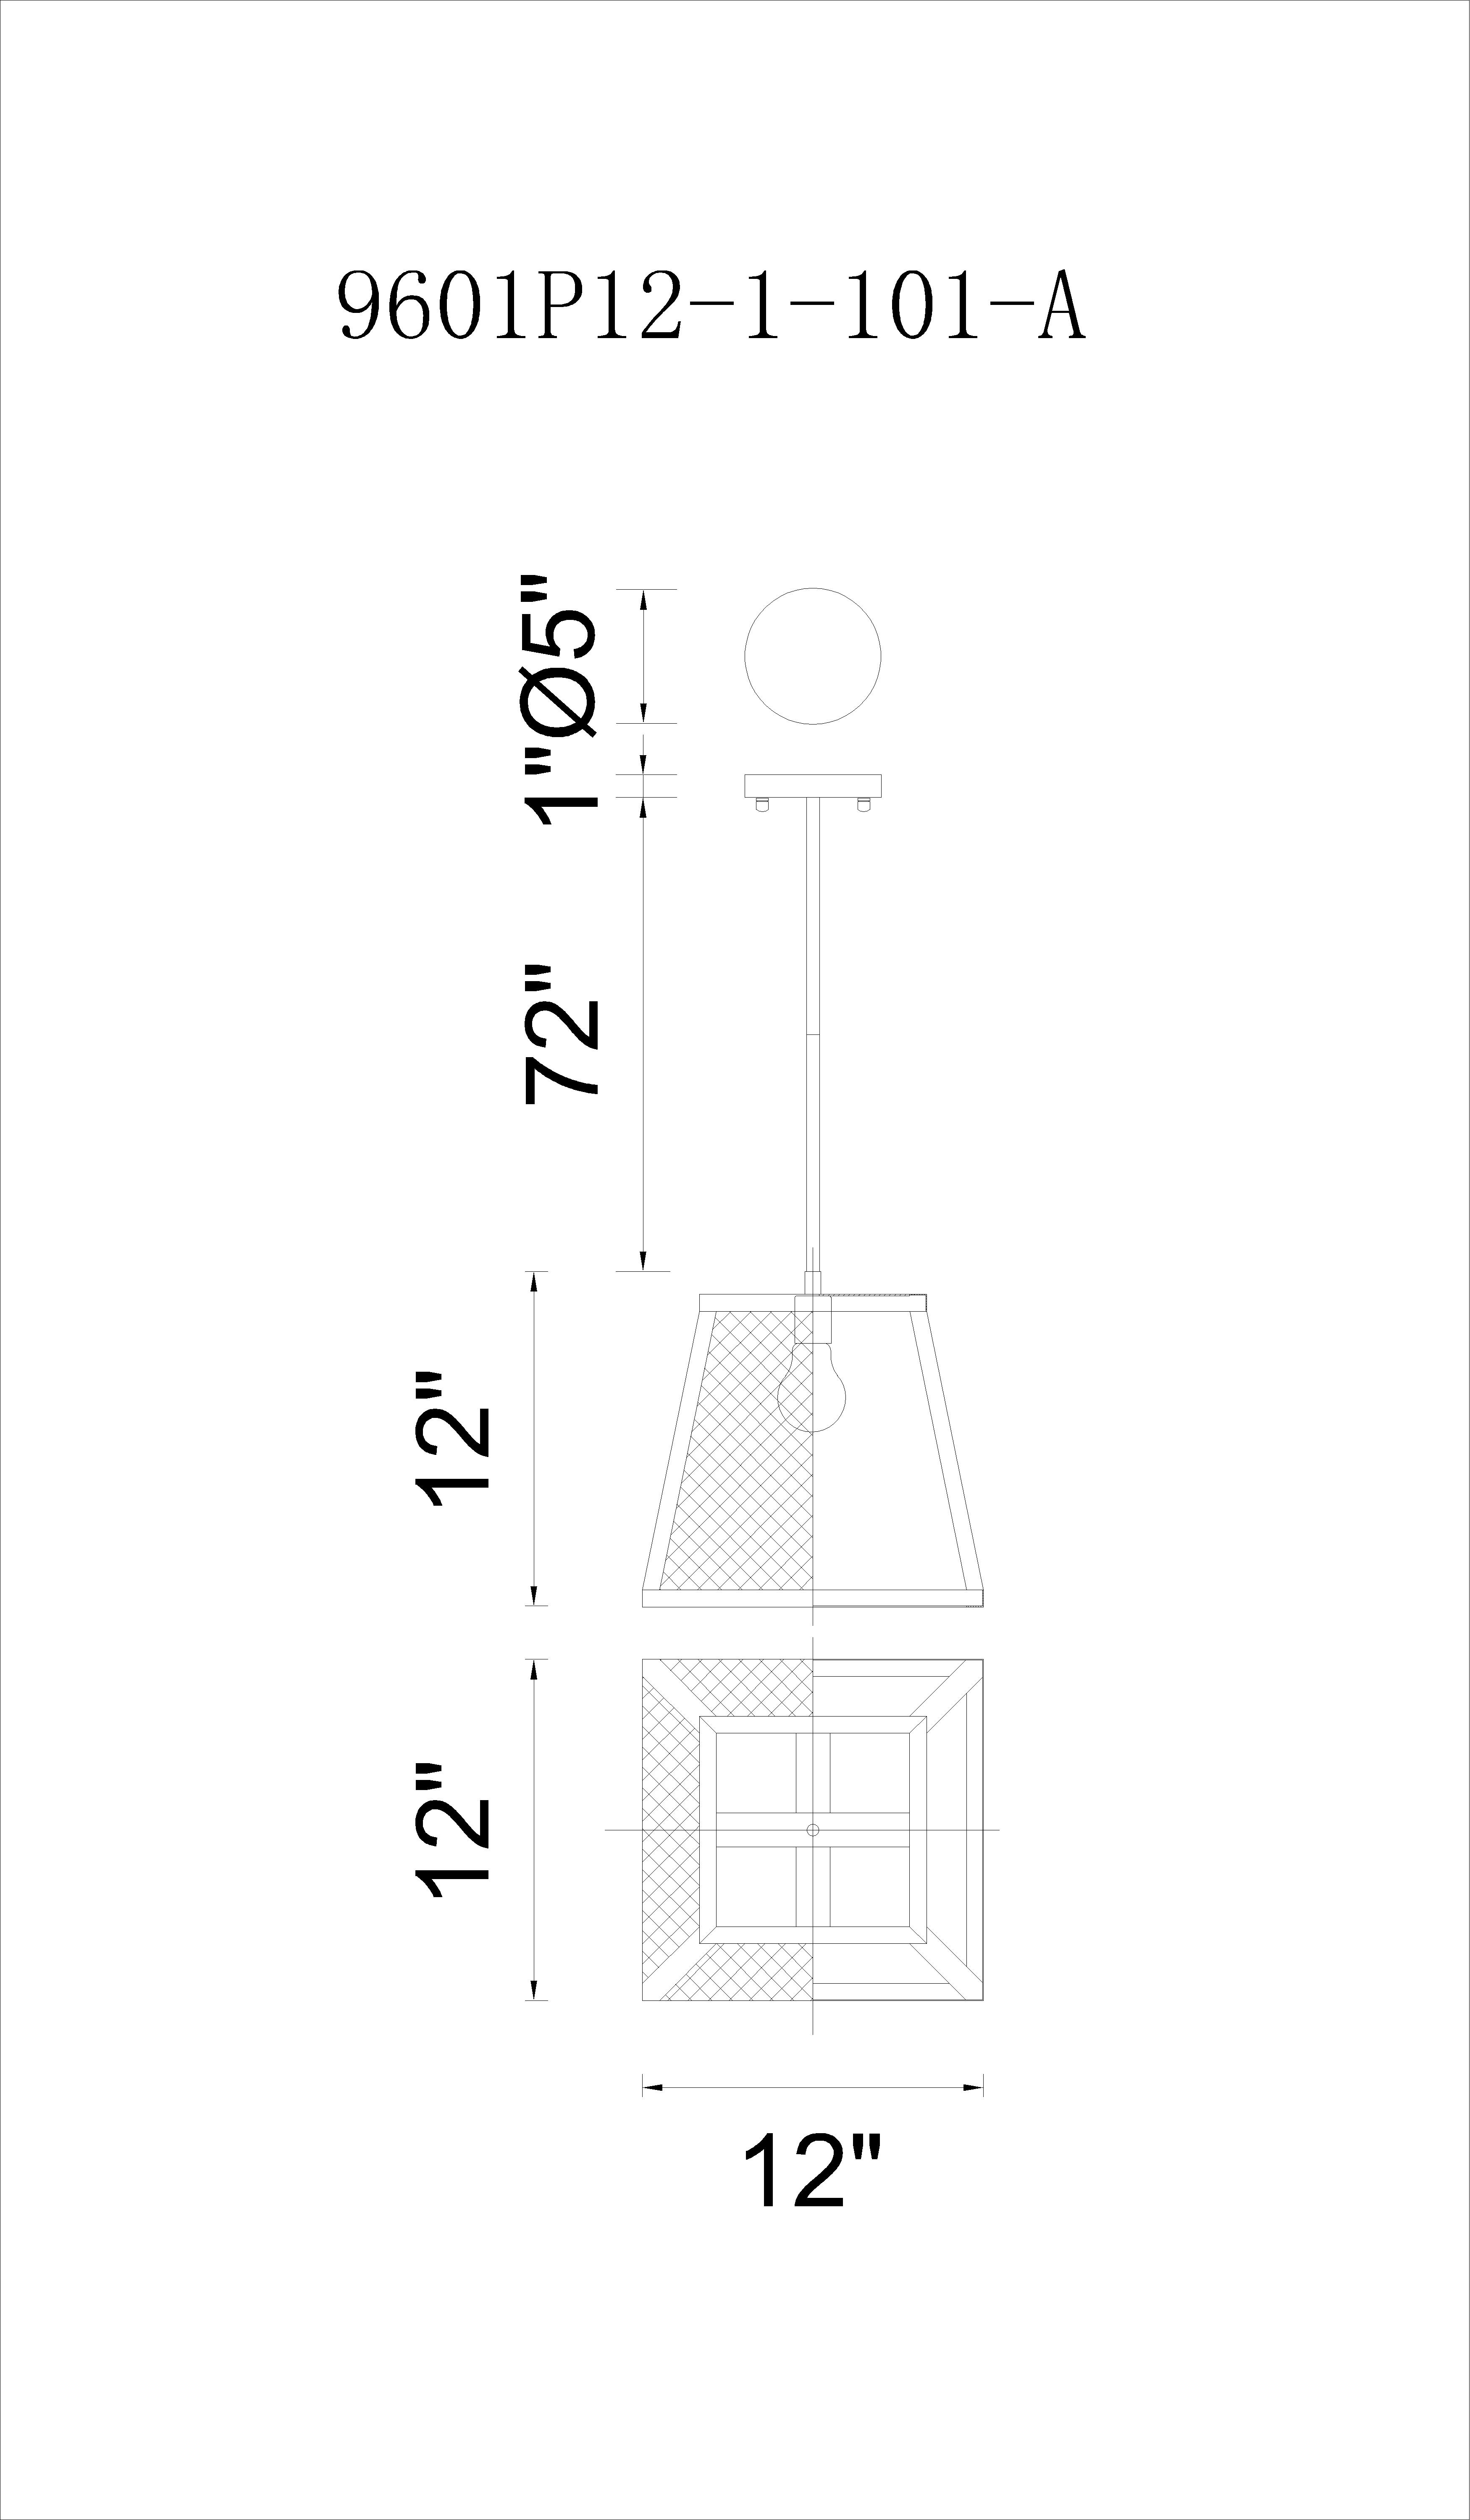 CWI Lighting Macleay 1 Light Down Mini Pendant With Black Finish Model: 9601P12-1-101-A Line Drawing